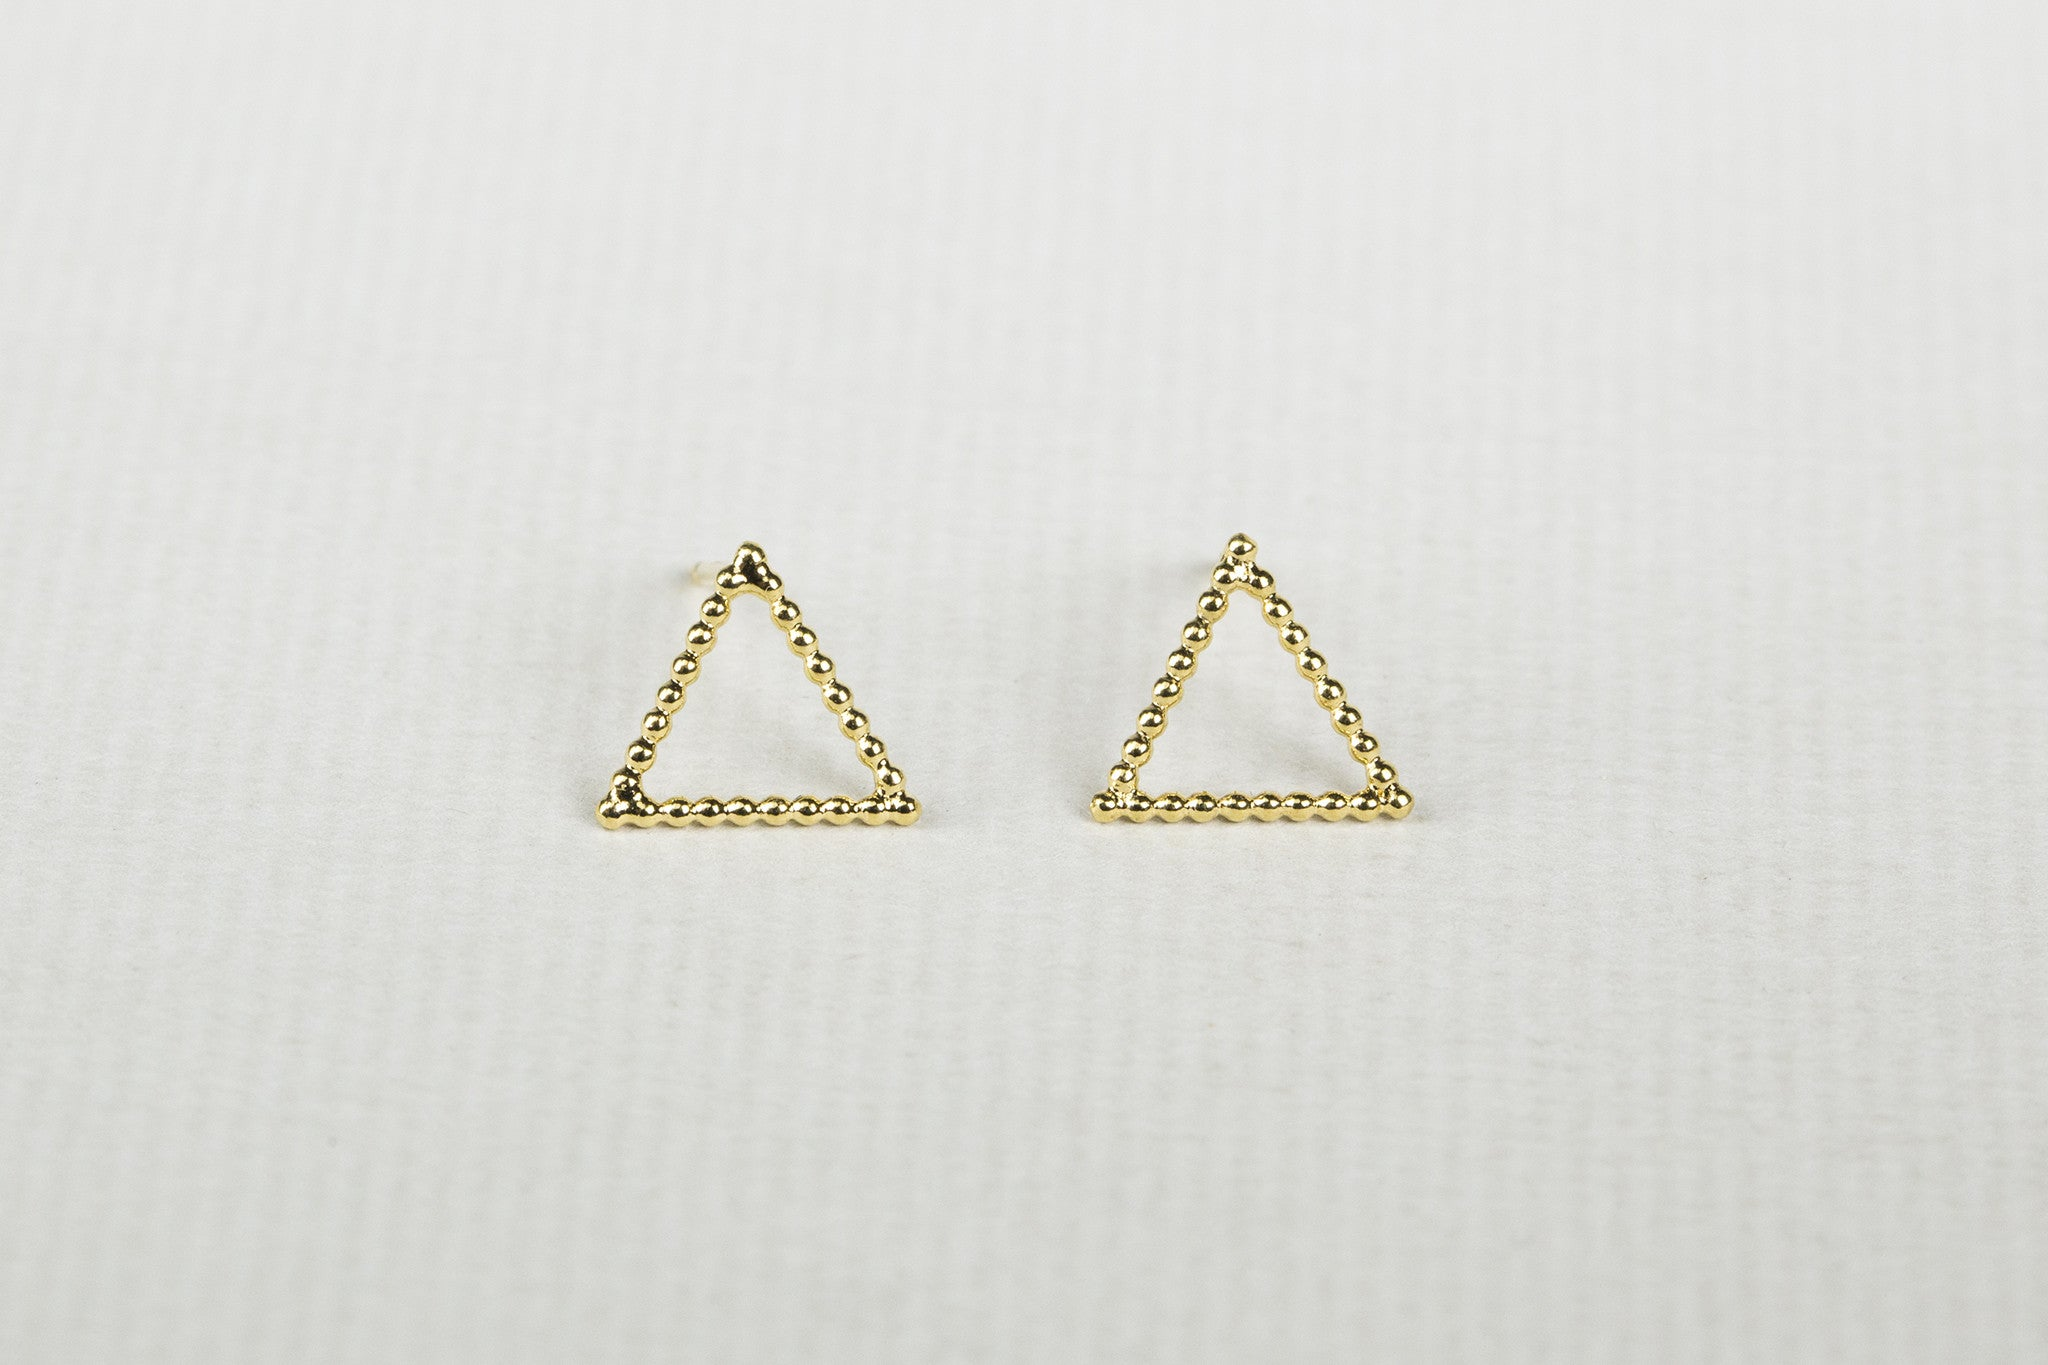 Geometric studs made of gold plated silver